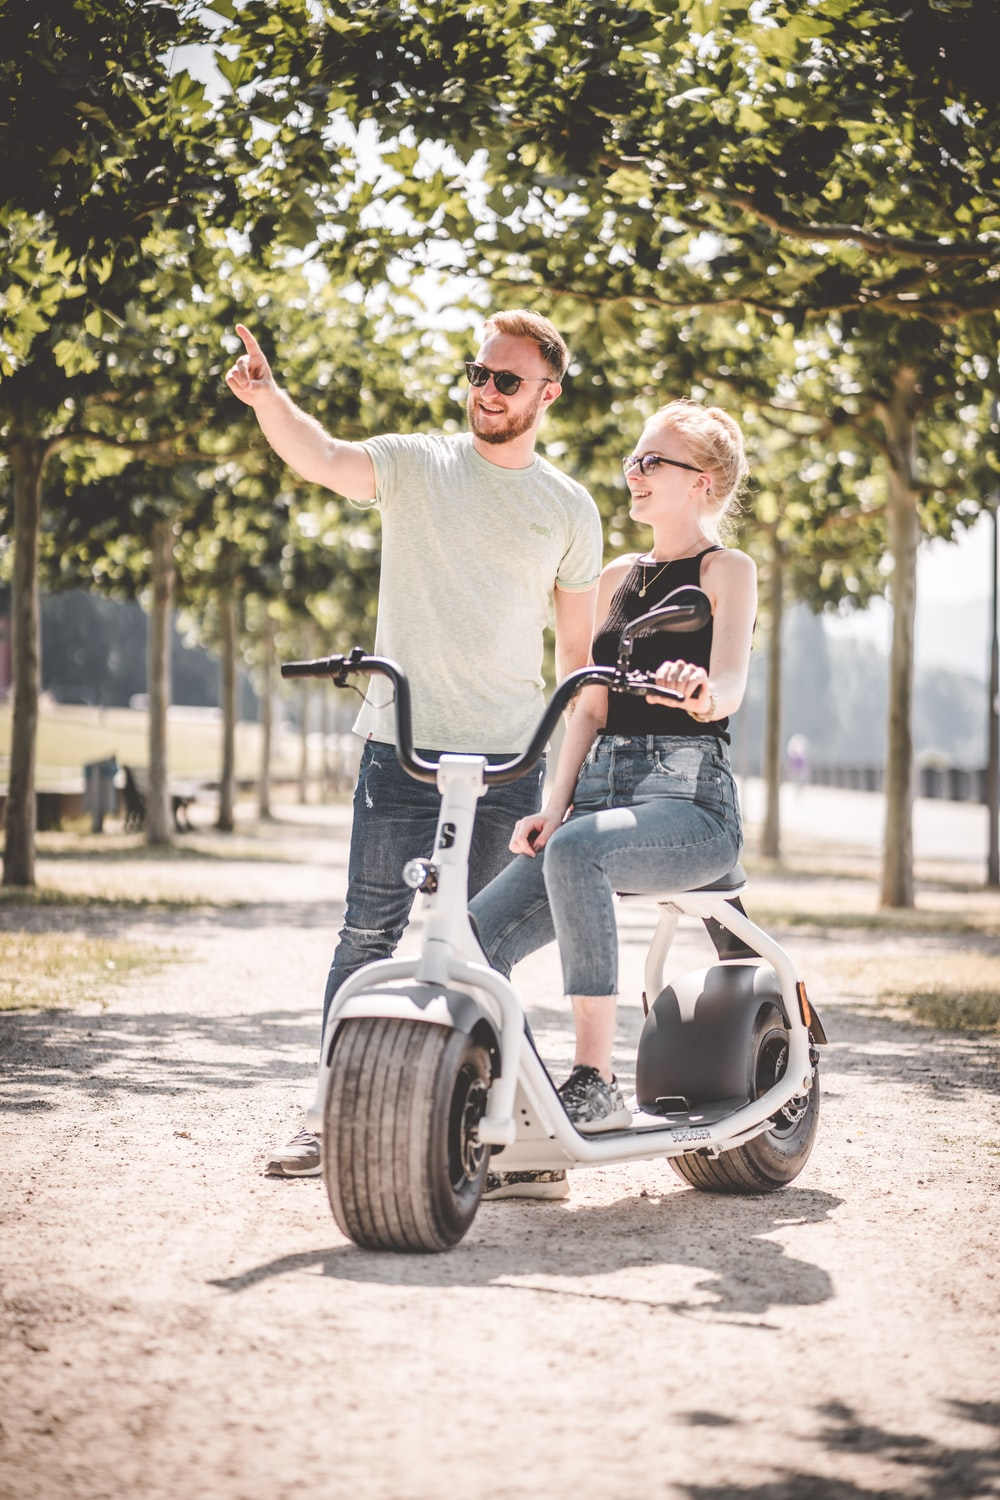 man and woman riding on motorcycle during daytime